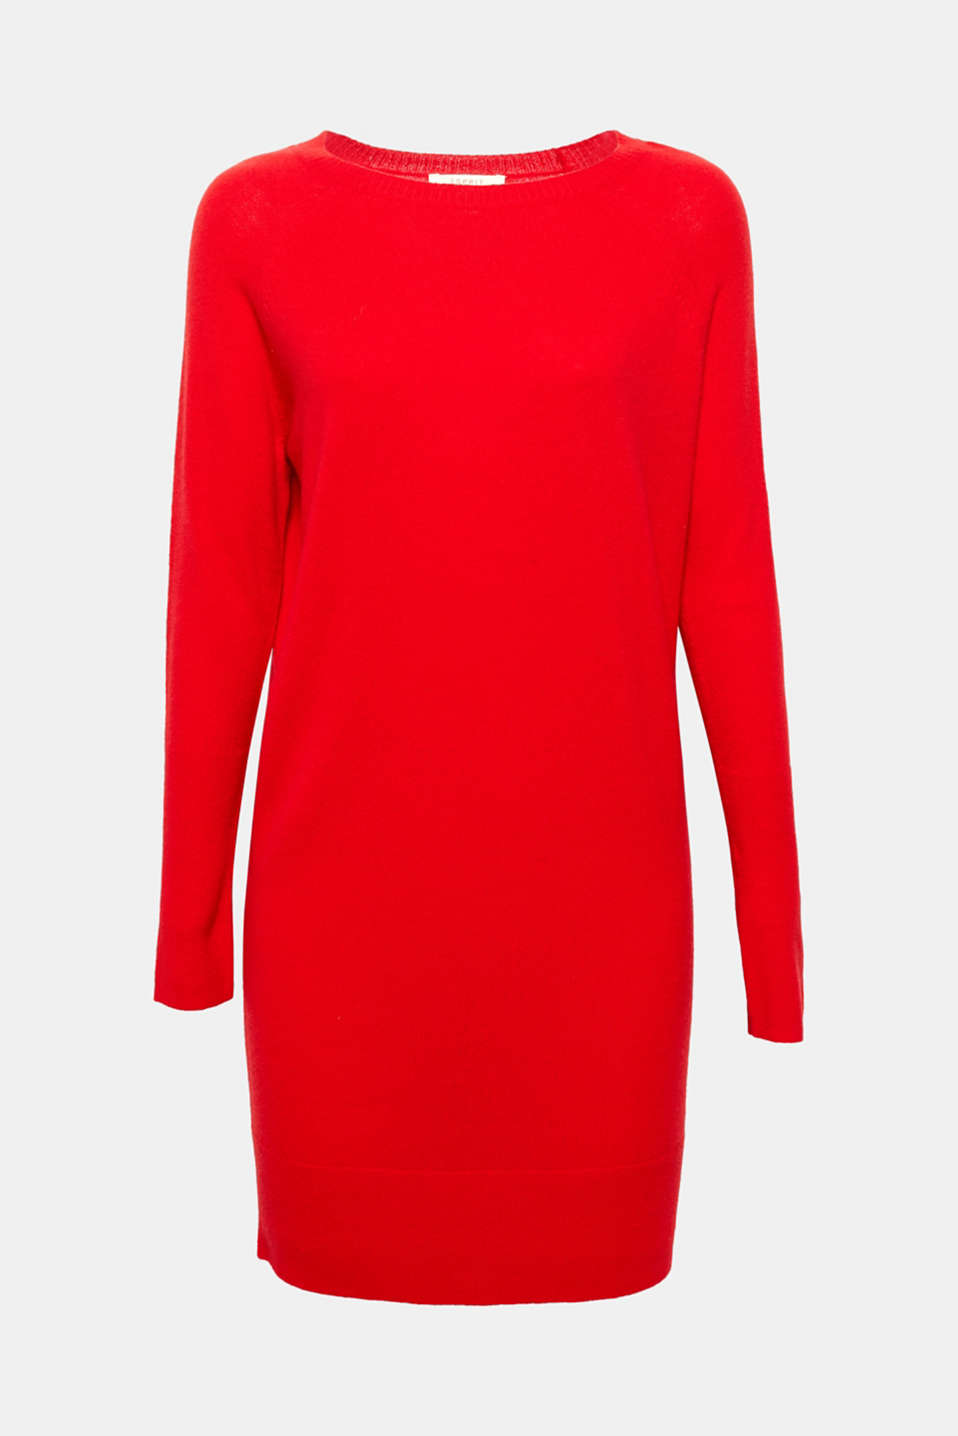 This straight cut, fine knit dress is casual, timeless and elegant in a high-quality, soft blend of wool and cashmere!